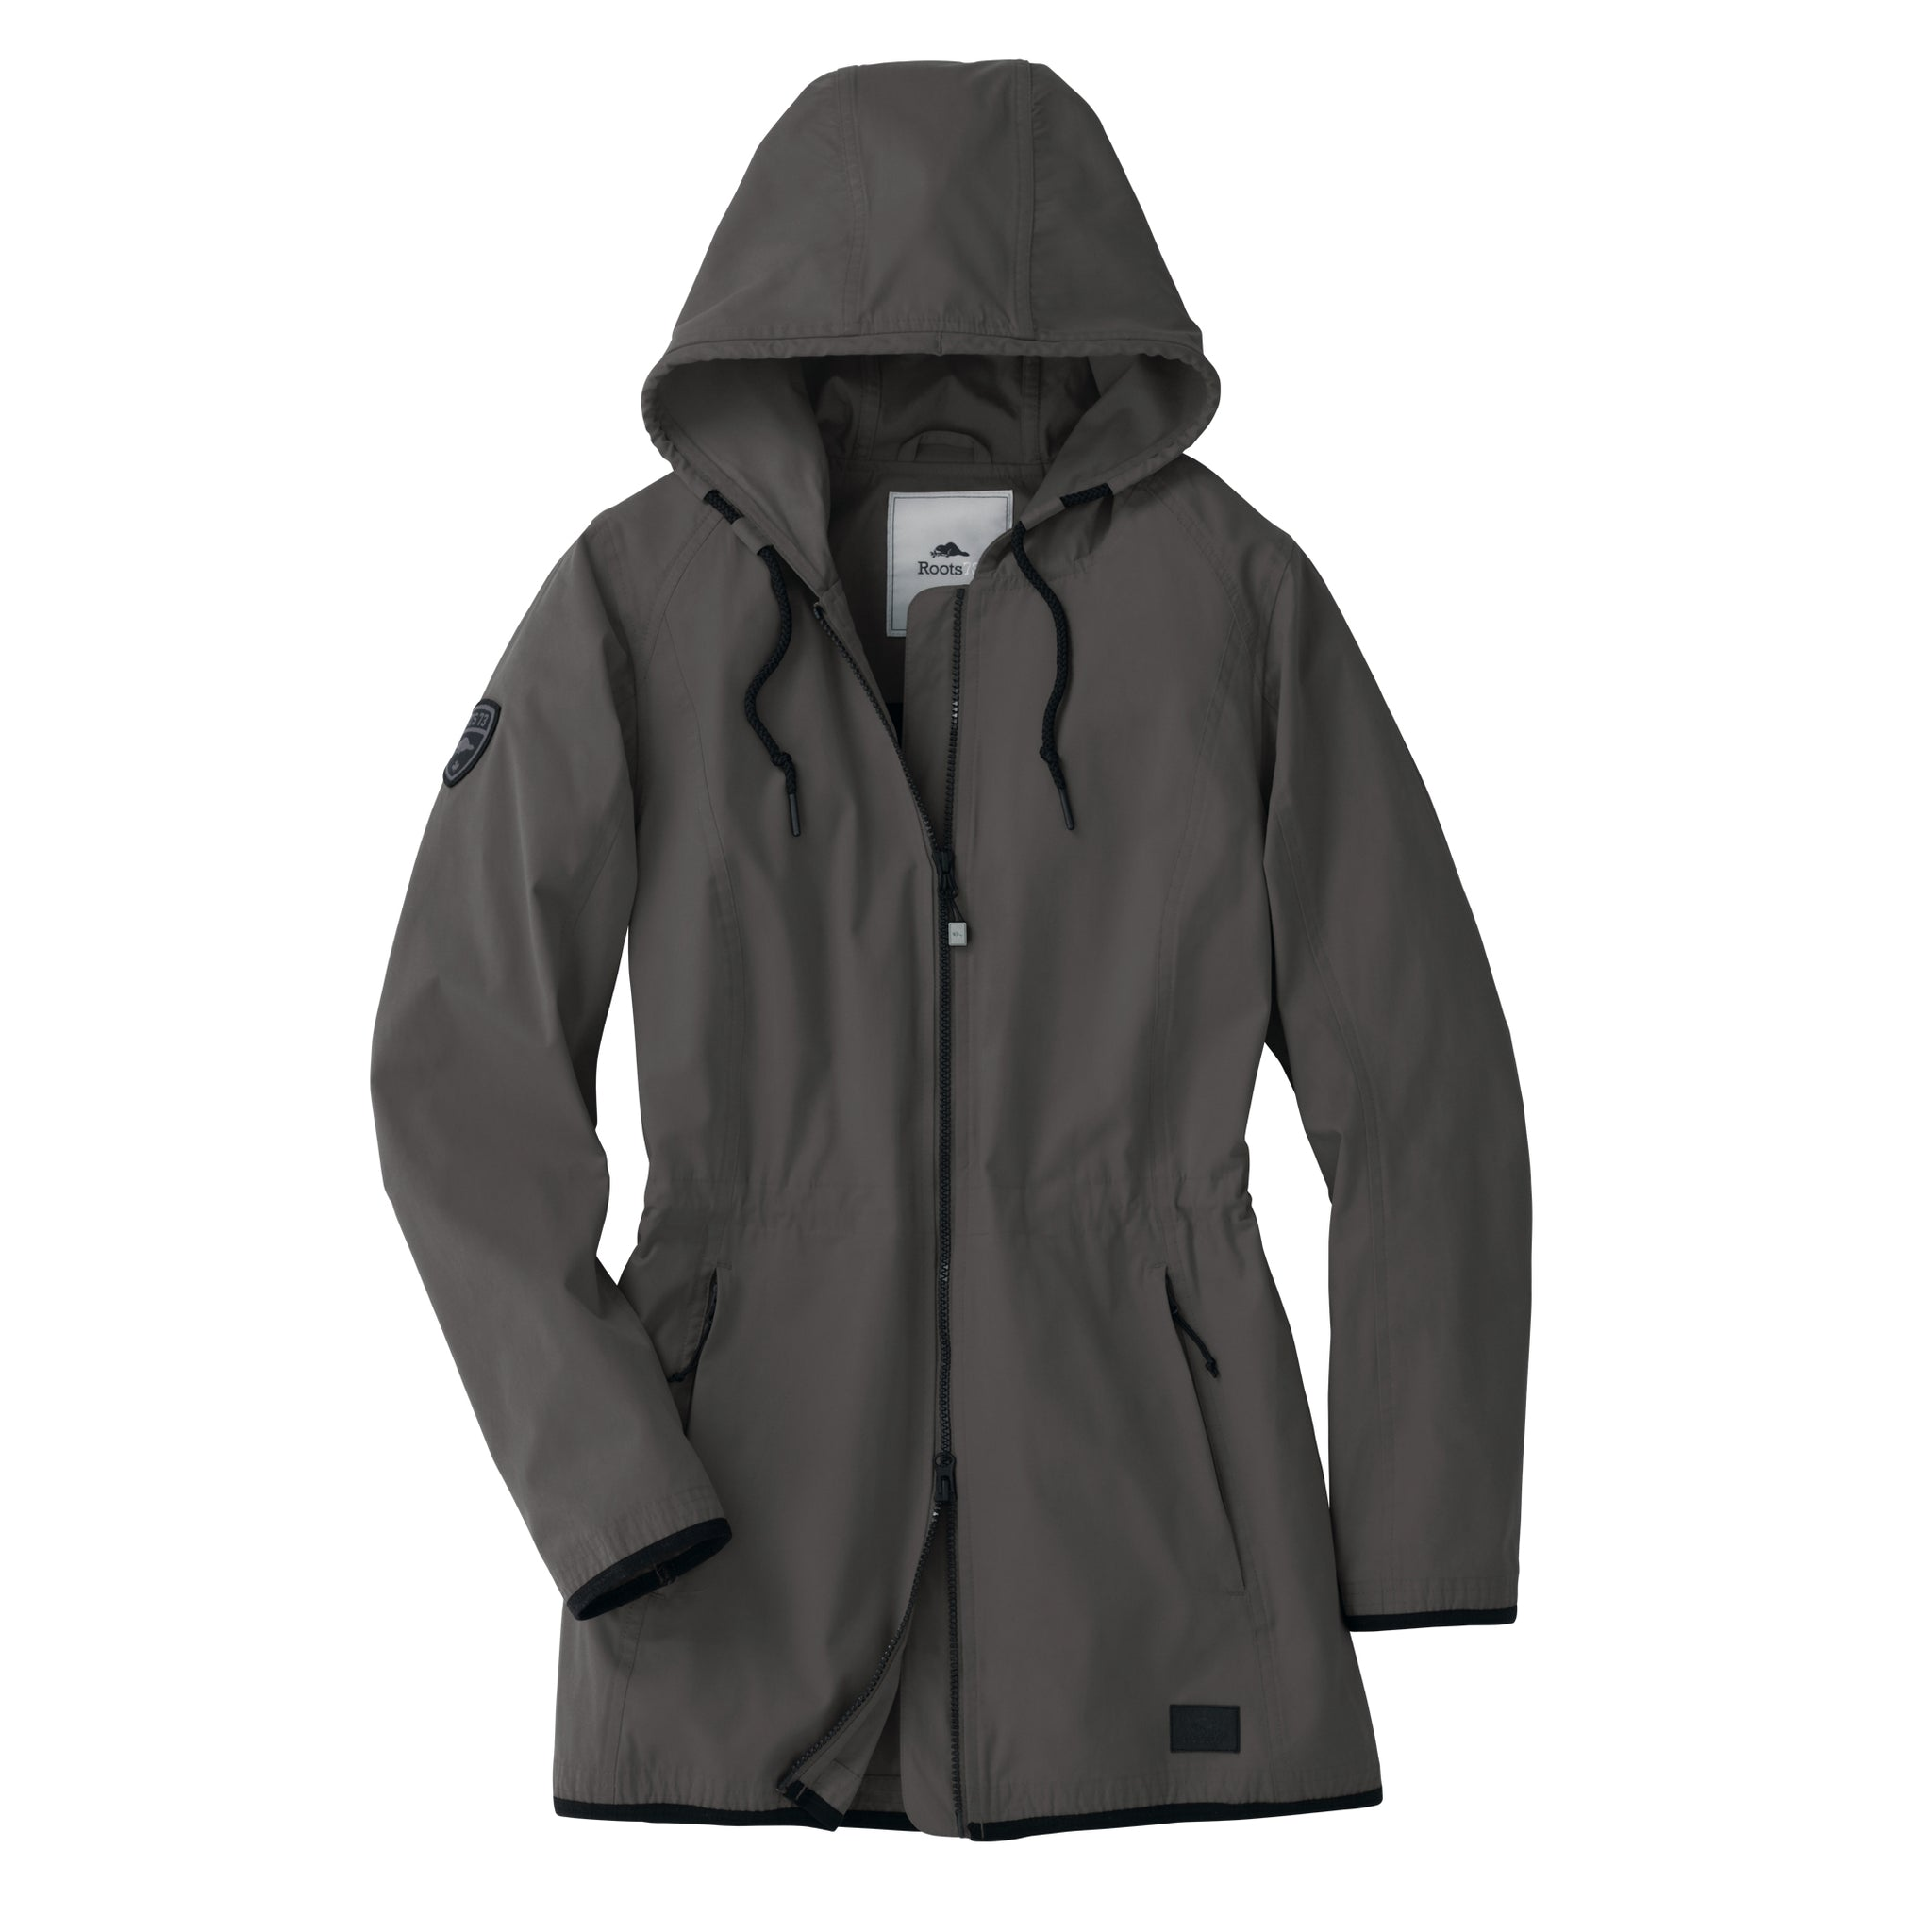 ROOTS73 LADIES MARTINRIVER JACKET